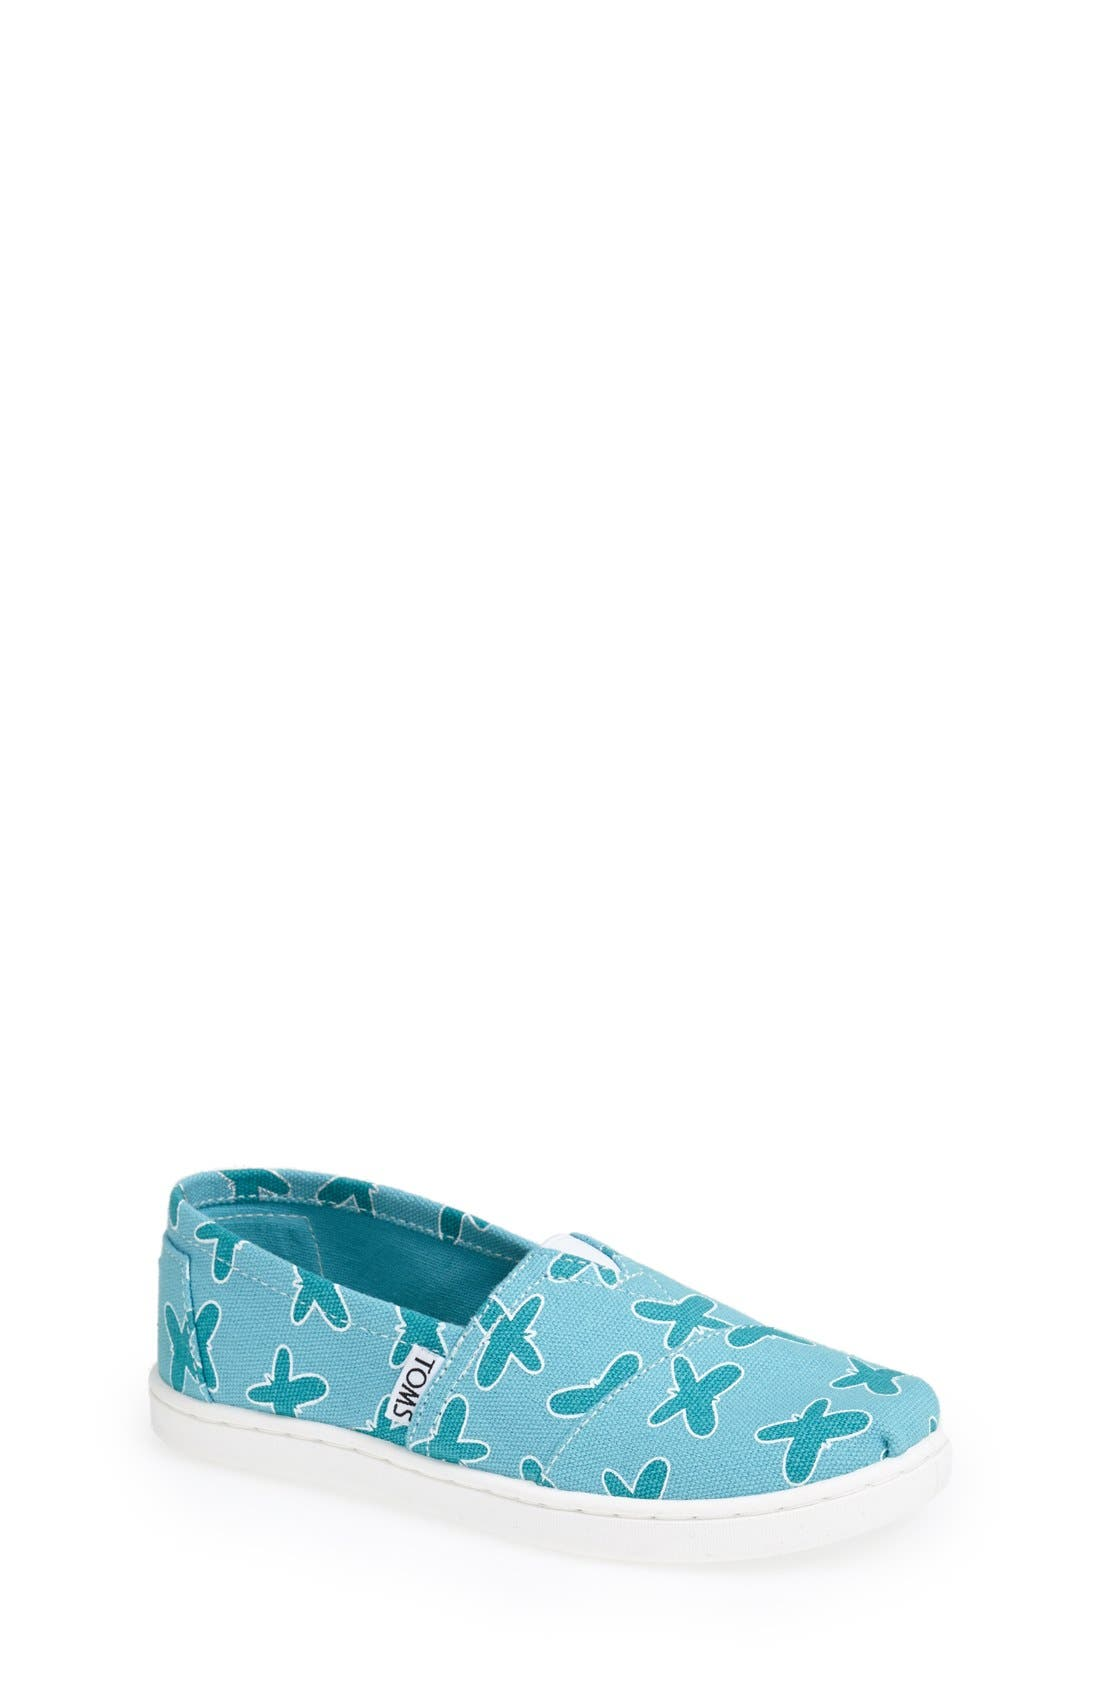 Main Image - TOMS 'Classic Youth - Butterfly' Slip-On (Toddler, Little Kid & Big Kid)